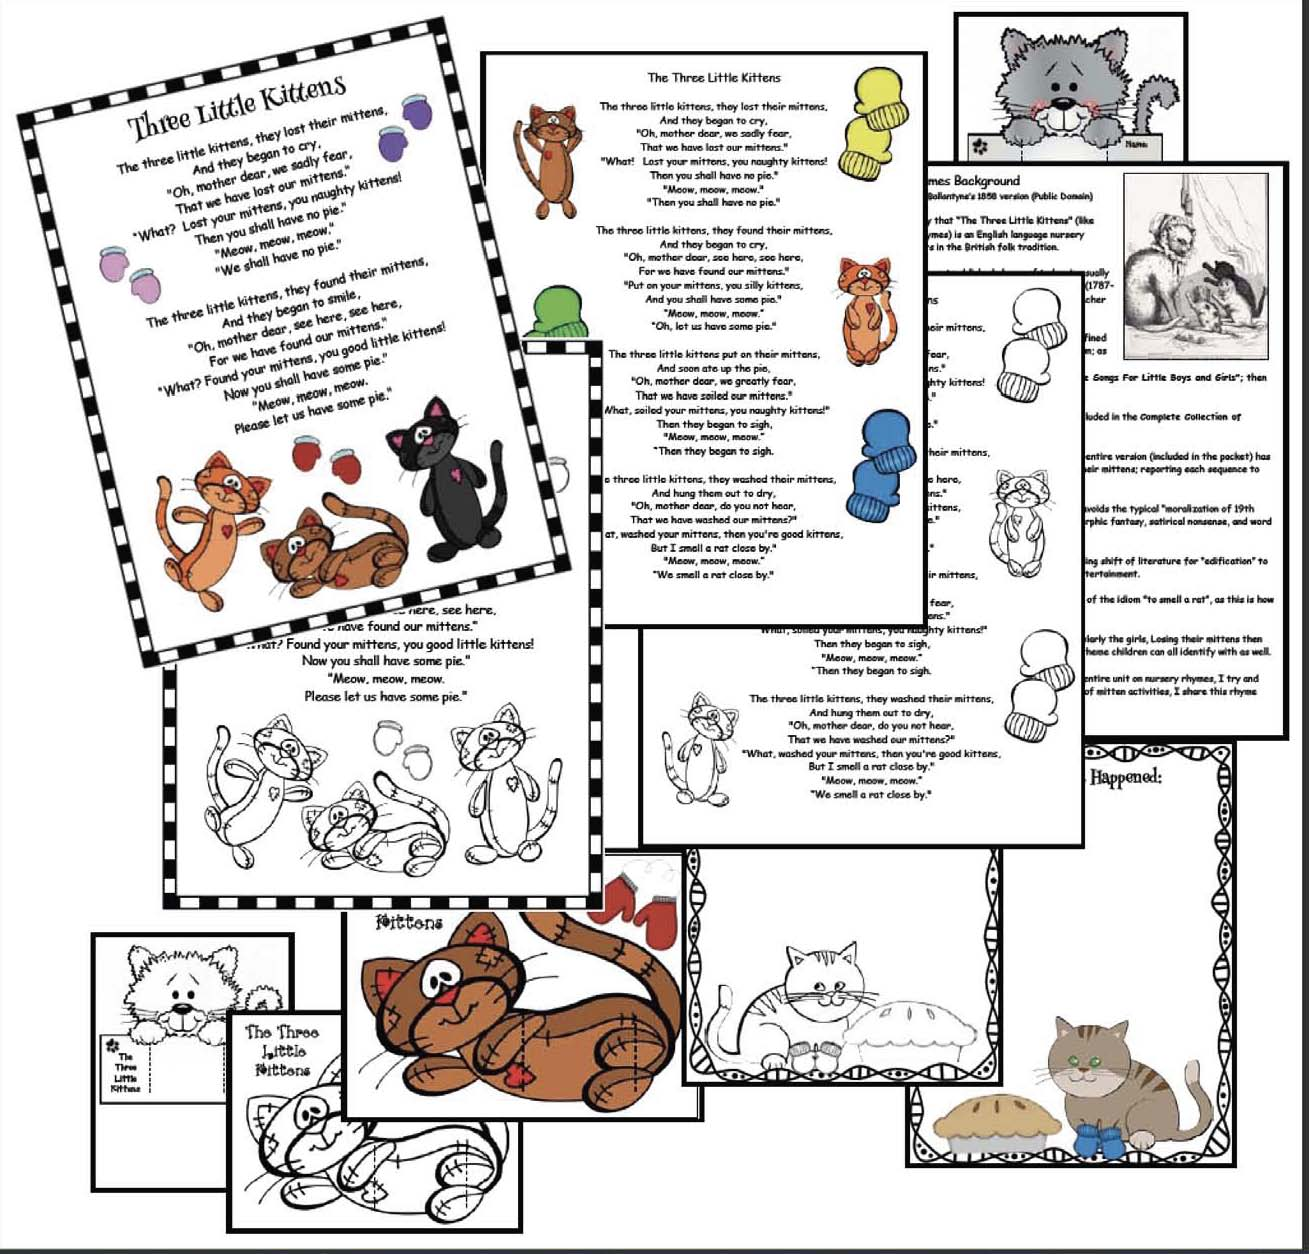 story telling wheels, nursery rhyme activities, storytelling slider crafts, nursery rhyme crafts, 3 little kittens, nursery rhyme centers, activities for the 3 little kittens nursery rhyme